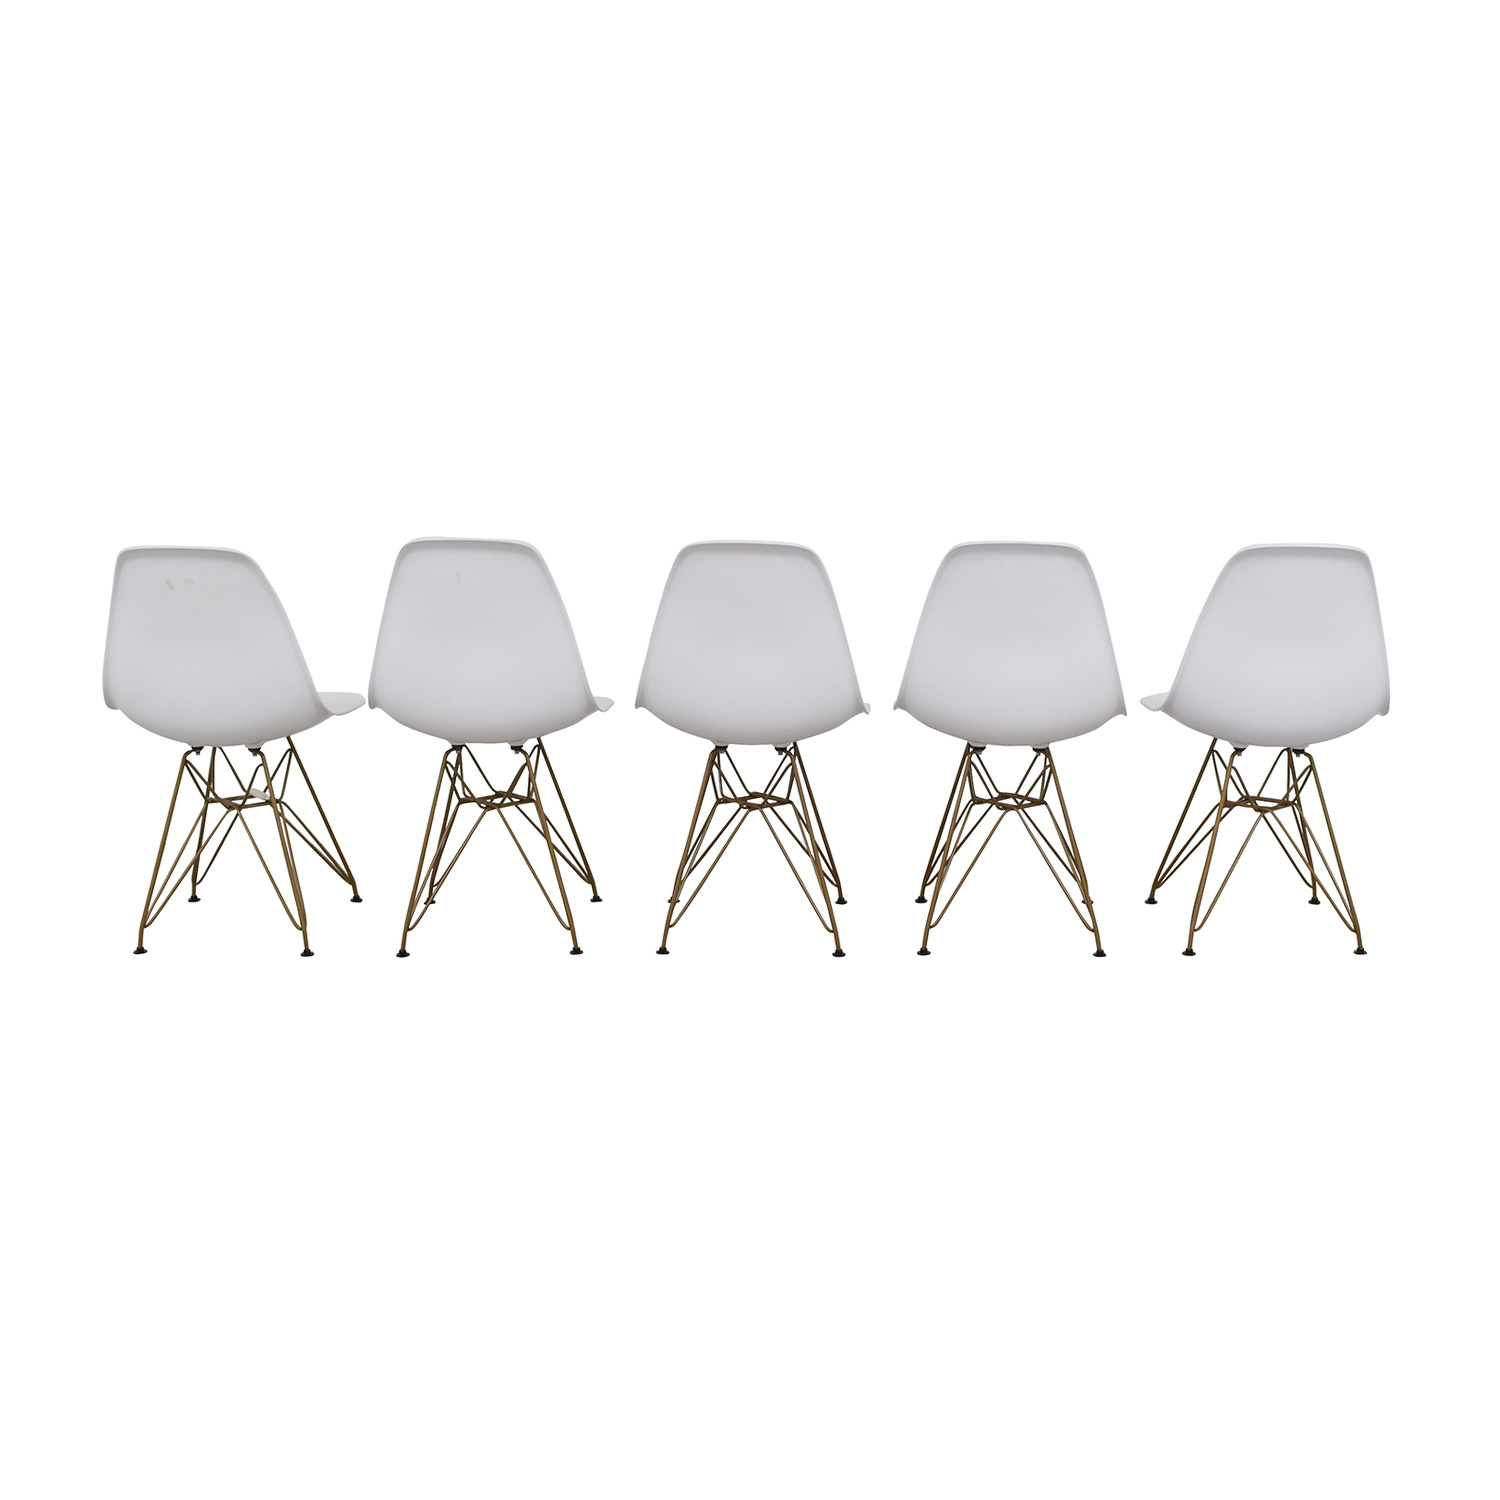 Junia Junia White Side Chairs on sale